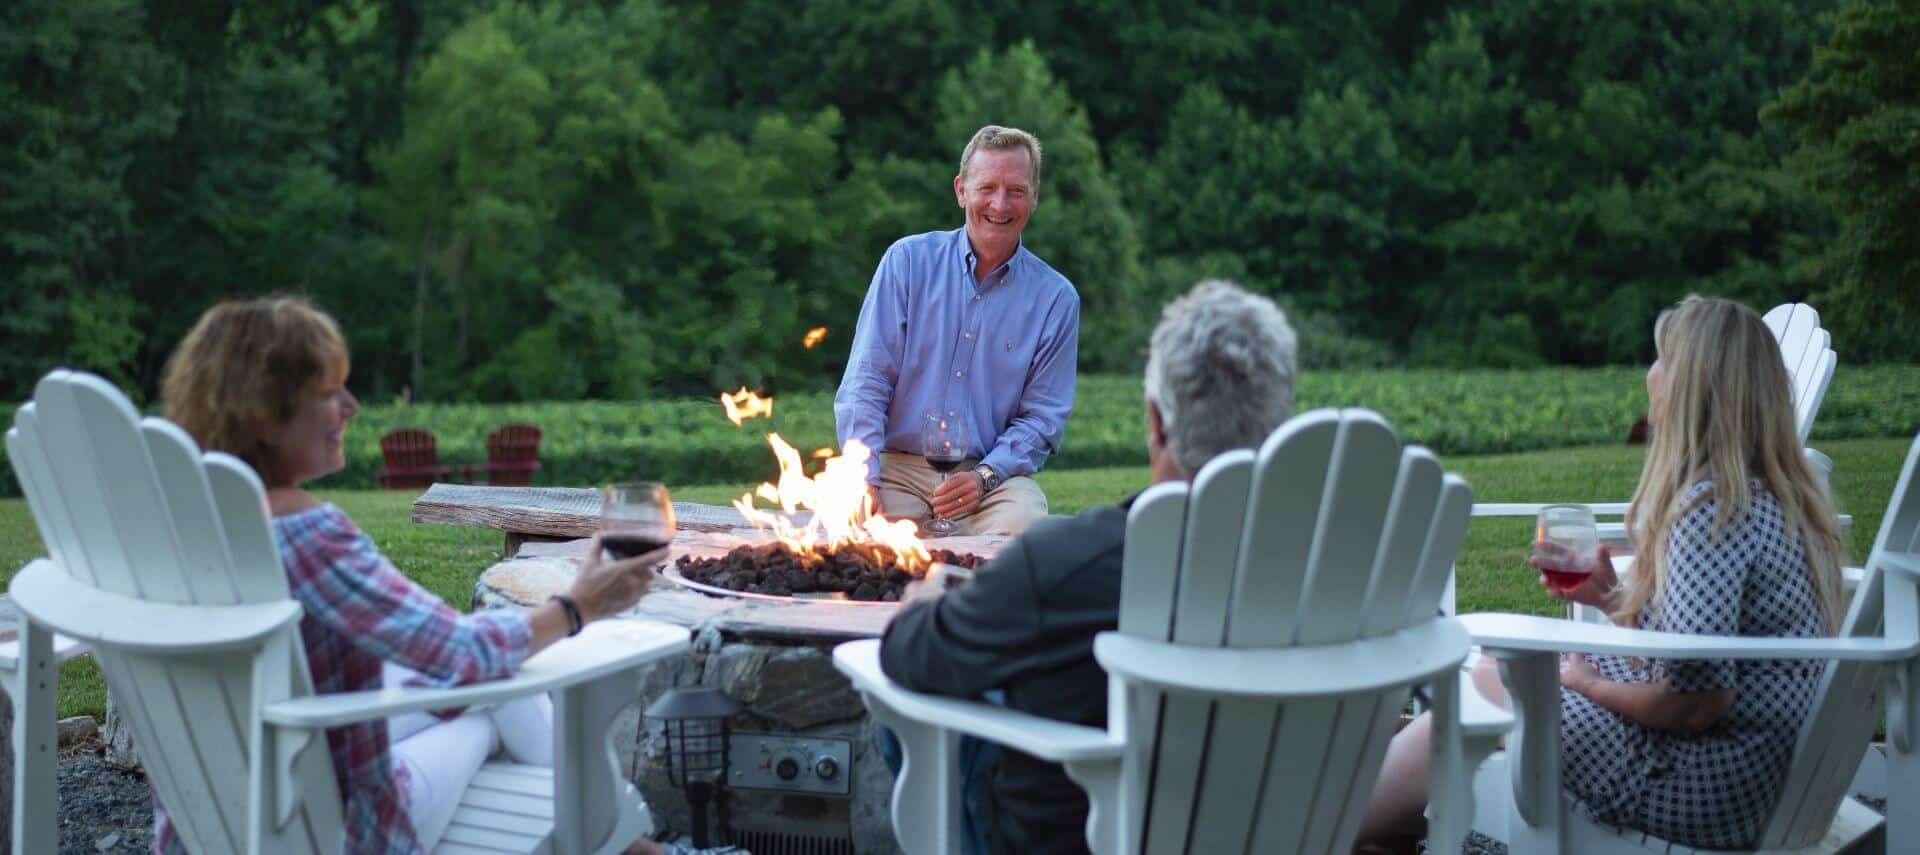 Smiling man in a blue shirt sitting by a firepit with people in white adirondack chairs